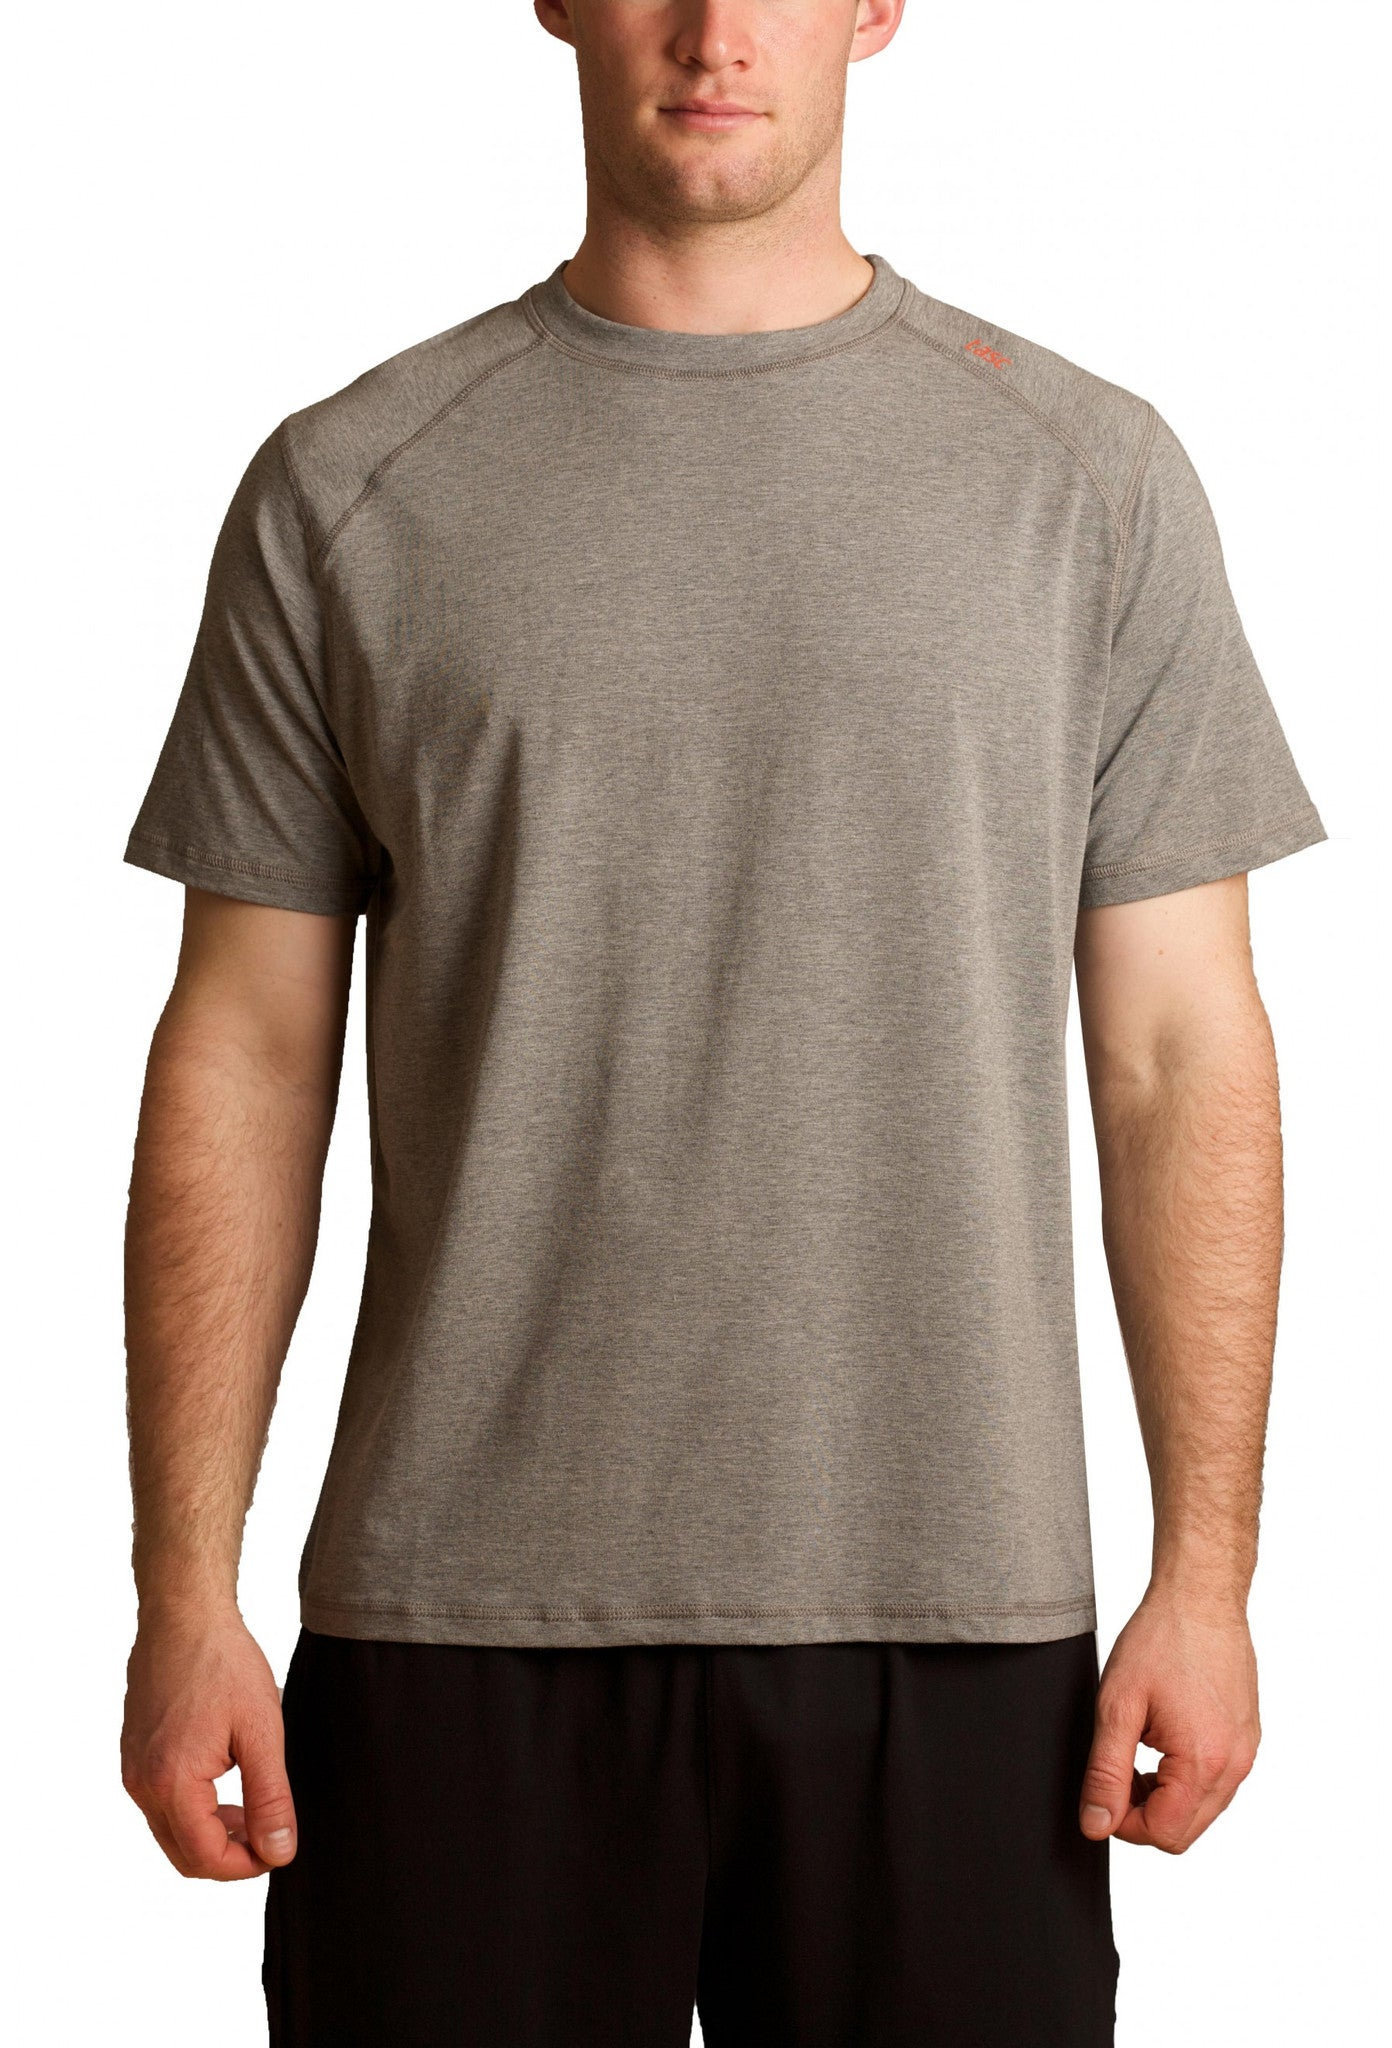 Tasc Performance Carrollton Crew Neck Tee T-M-110, Heather Gray